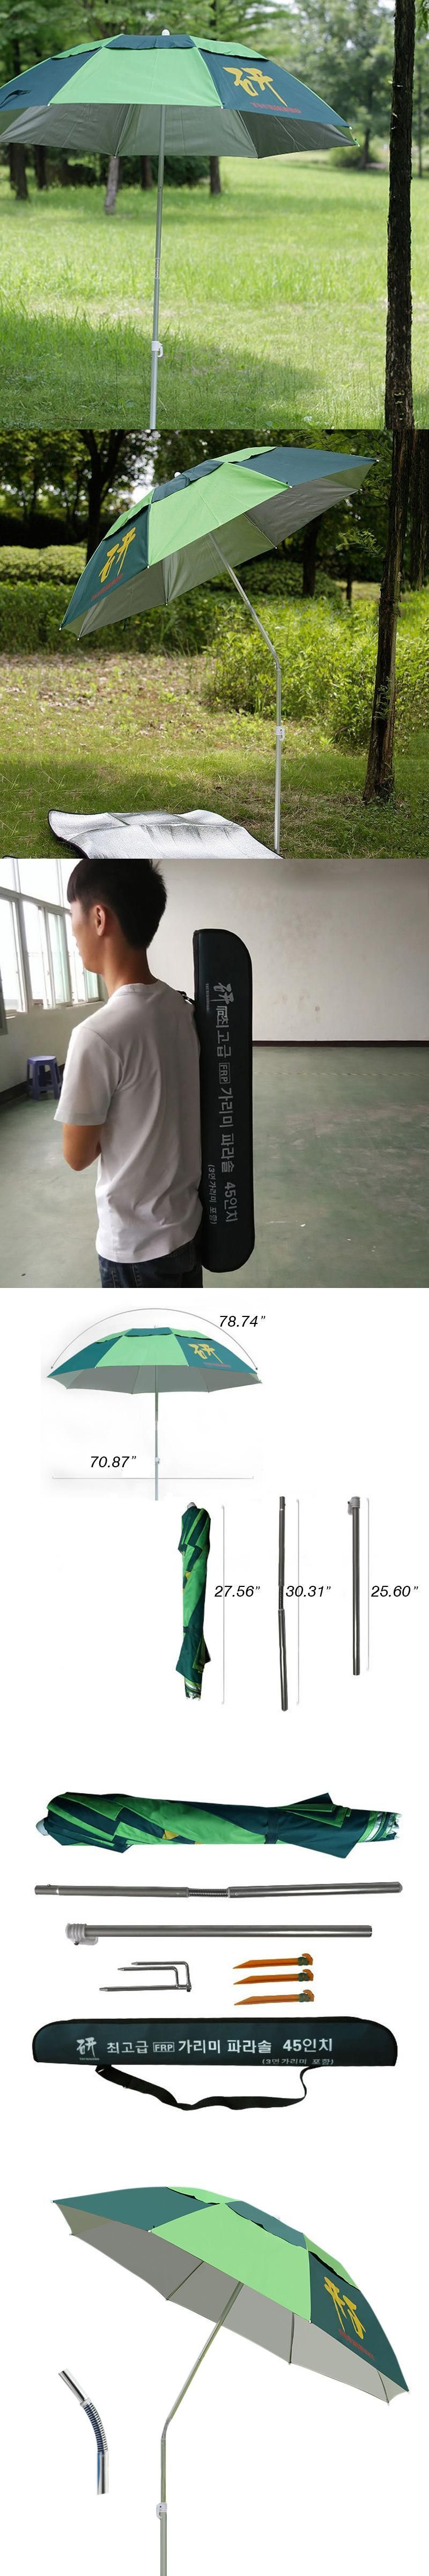 uk choice umbrella patio decorating wondrous home resistant windproof picnic wind umbrellas amazon best